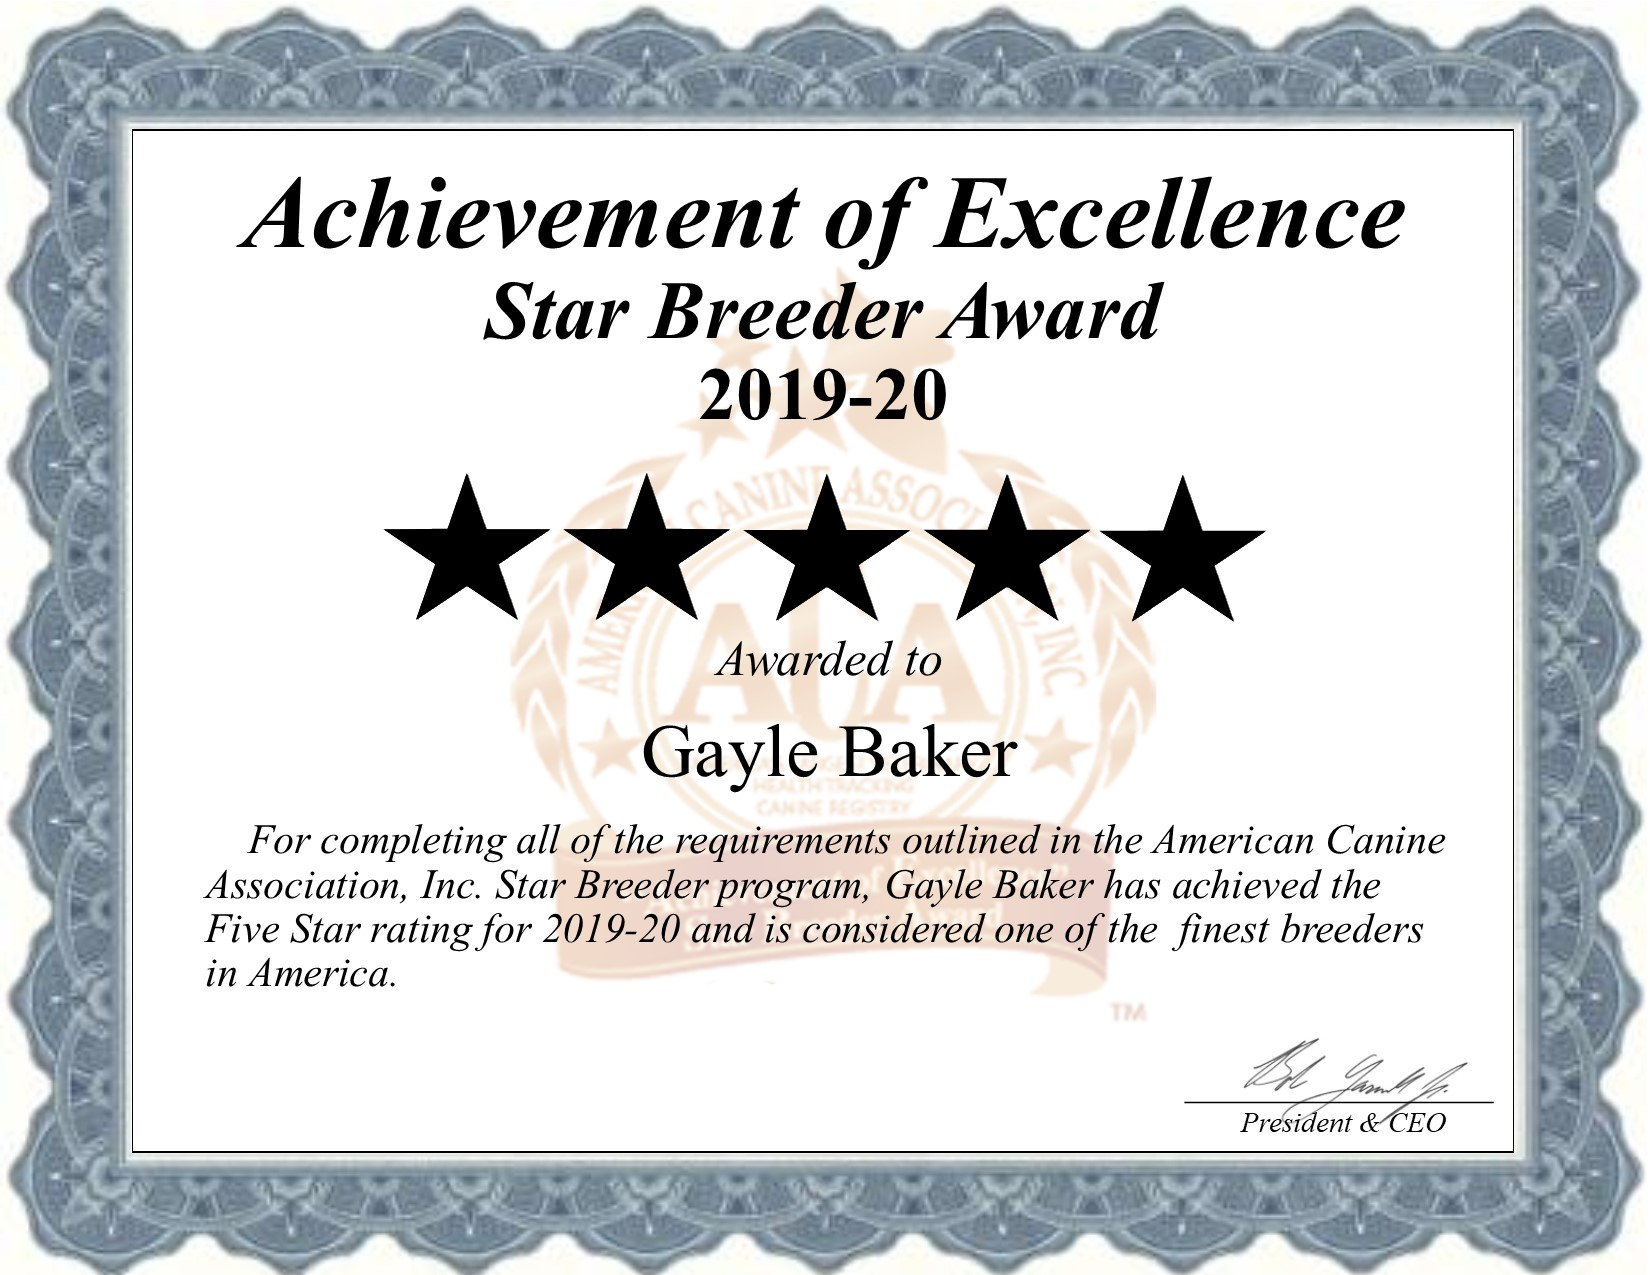 gayle, baker, dog, breeder, certificate, minneapolis, ks, kansas, gayle-baker, dog-breeder, dogbreeder, kennel, reviews, customer, star, starbreeder, 5, five, USDA, puppy, puppies, ACA, inspection, inspections, reports, mill, puppymill, mills